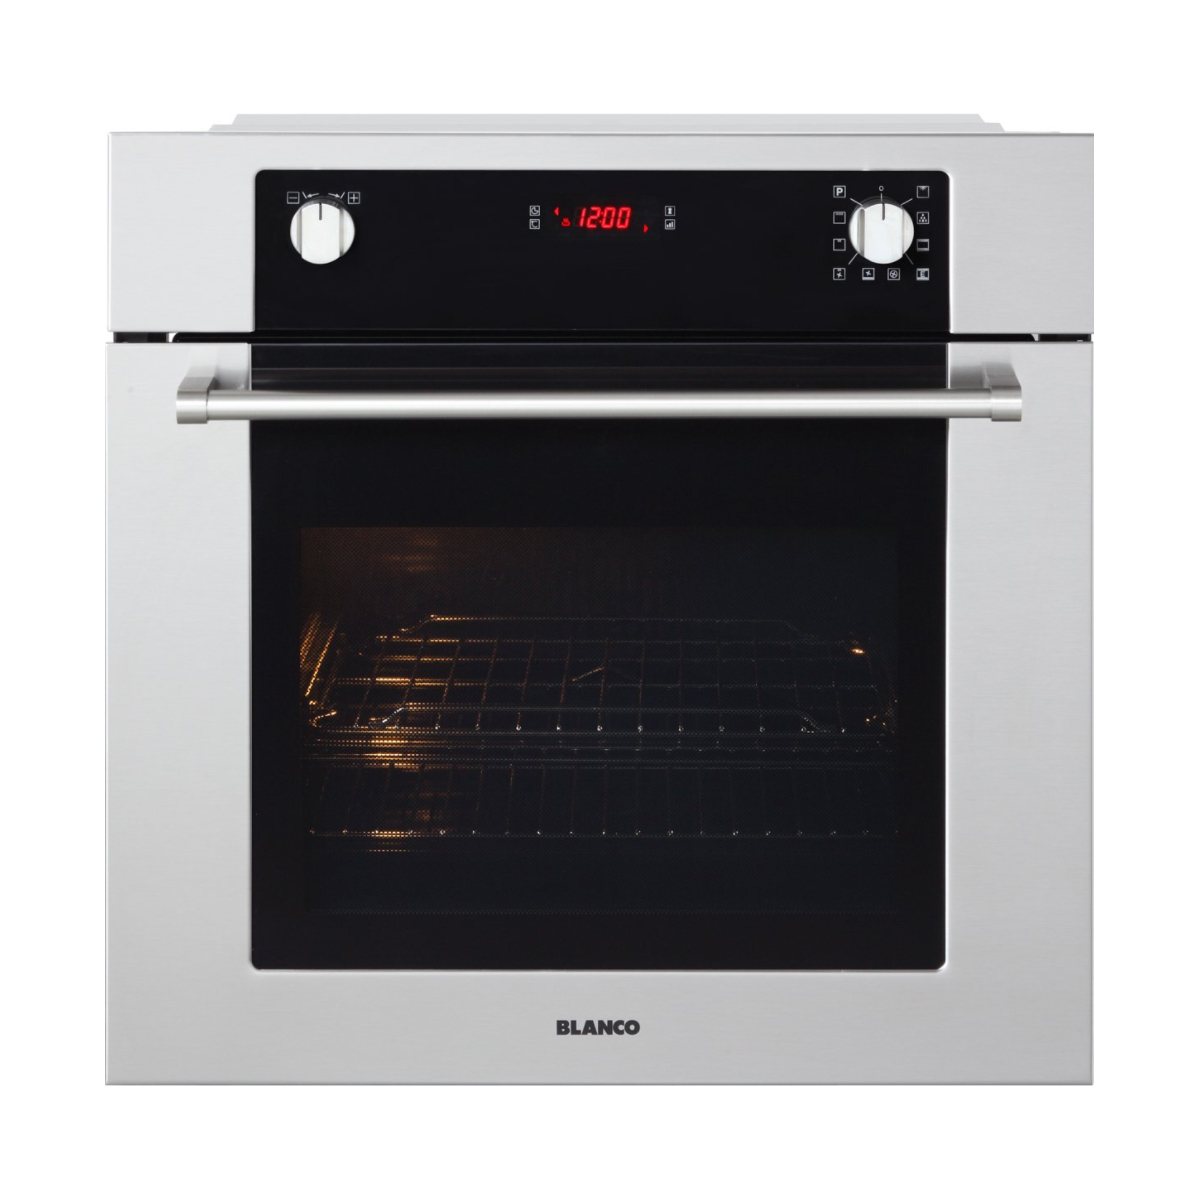 Blanco BOSE61PM 60cm Electric Wall Oven 67116